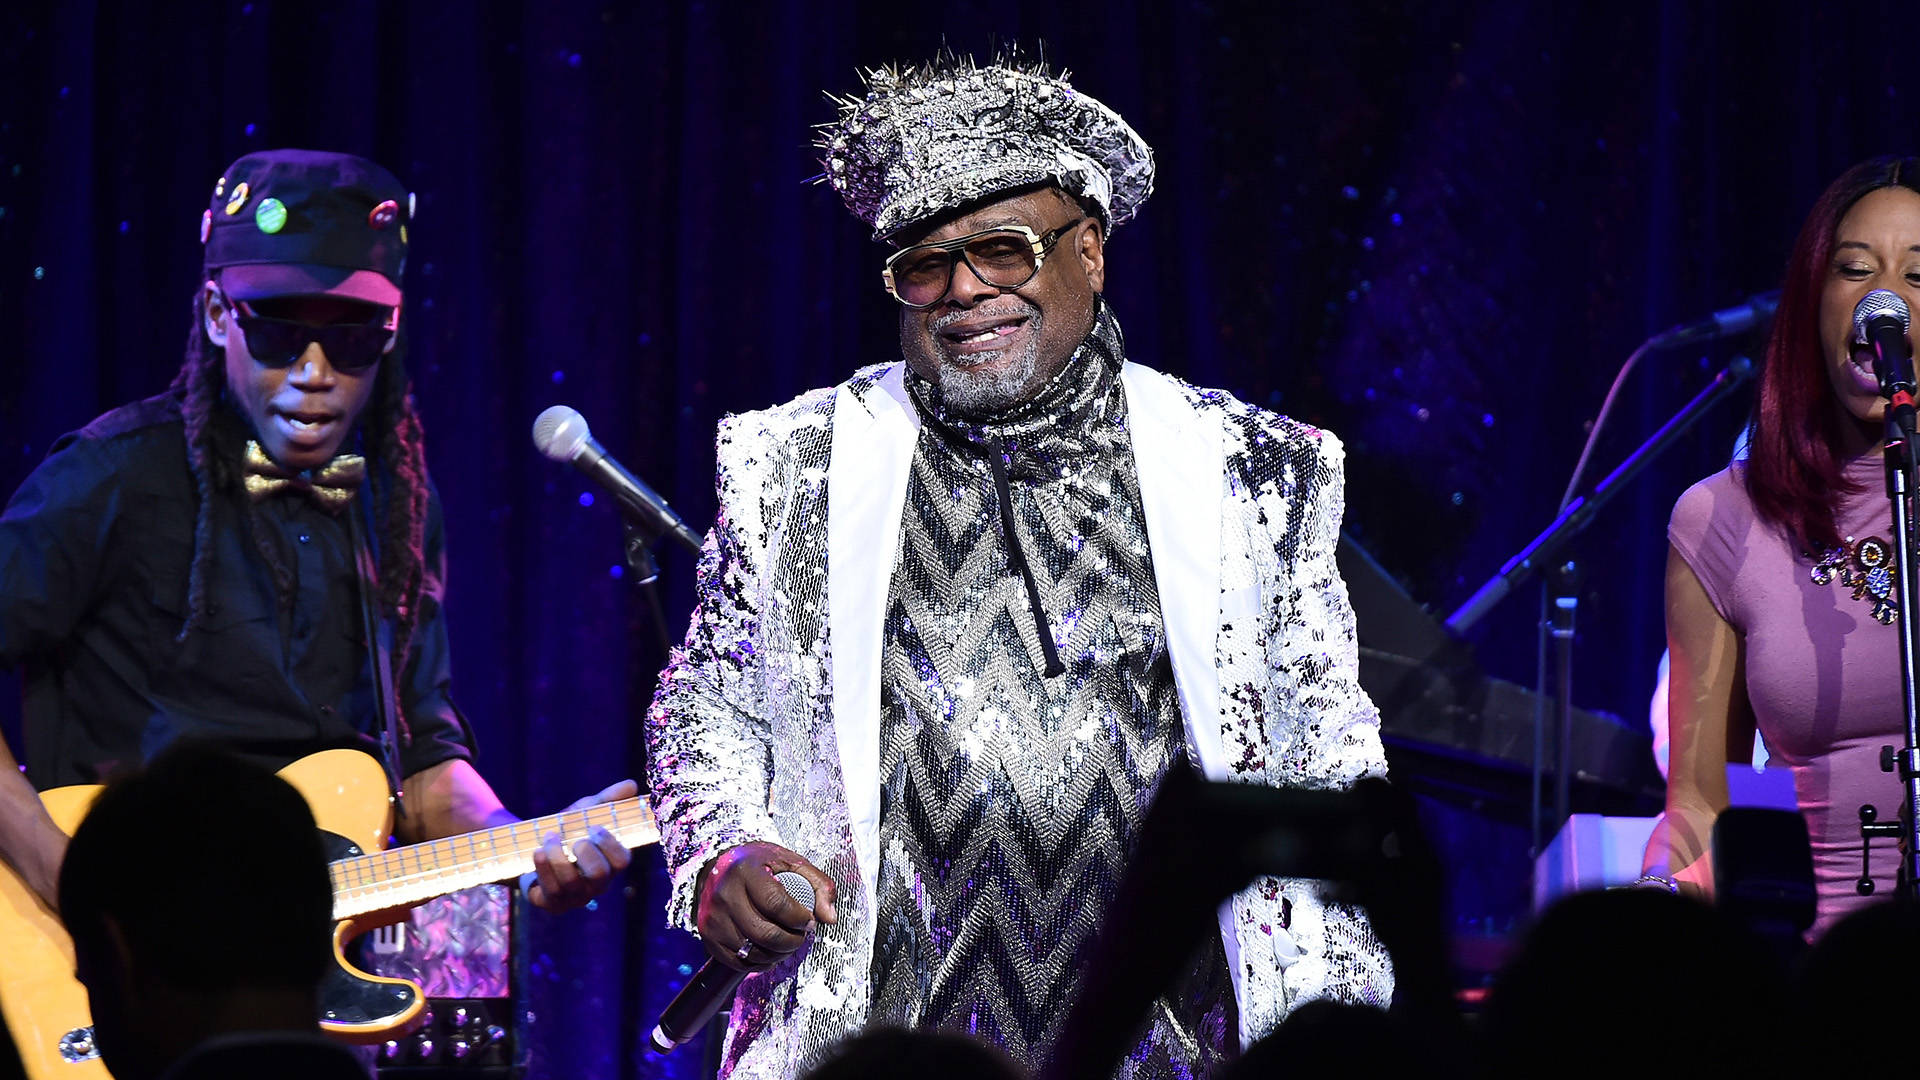 George Clinton performs at the 2017 SESAC Pop Awards on April 13, 2017 in New York City.  Theo Wargo/Getty Images for SESAC